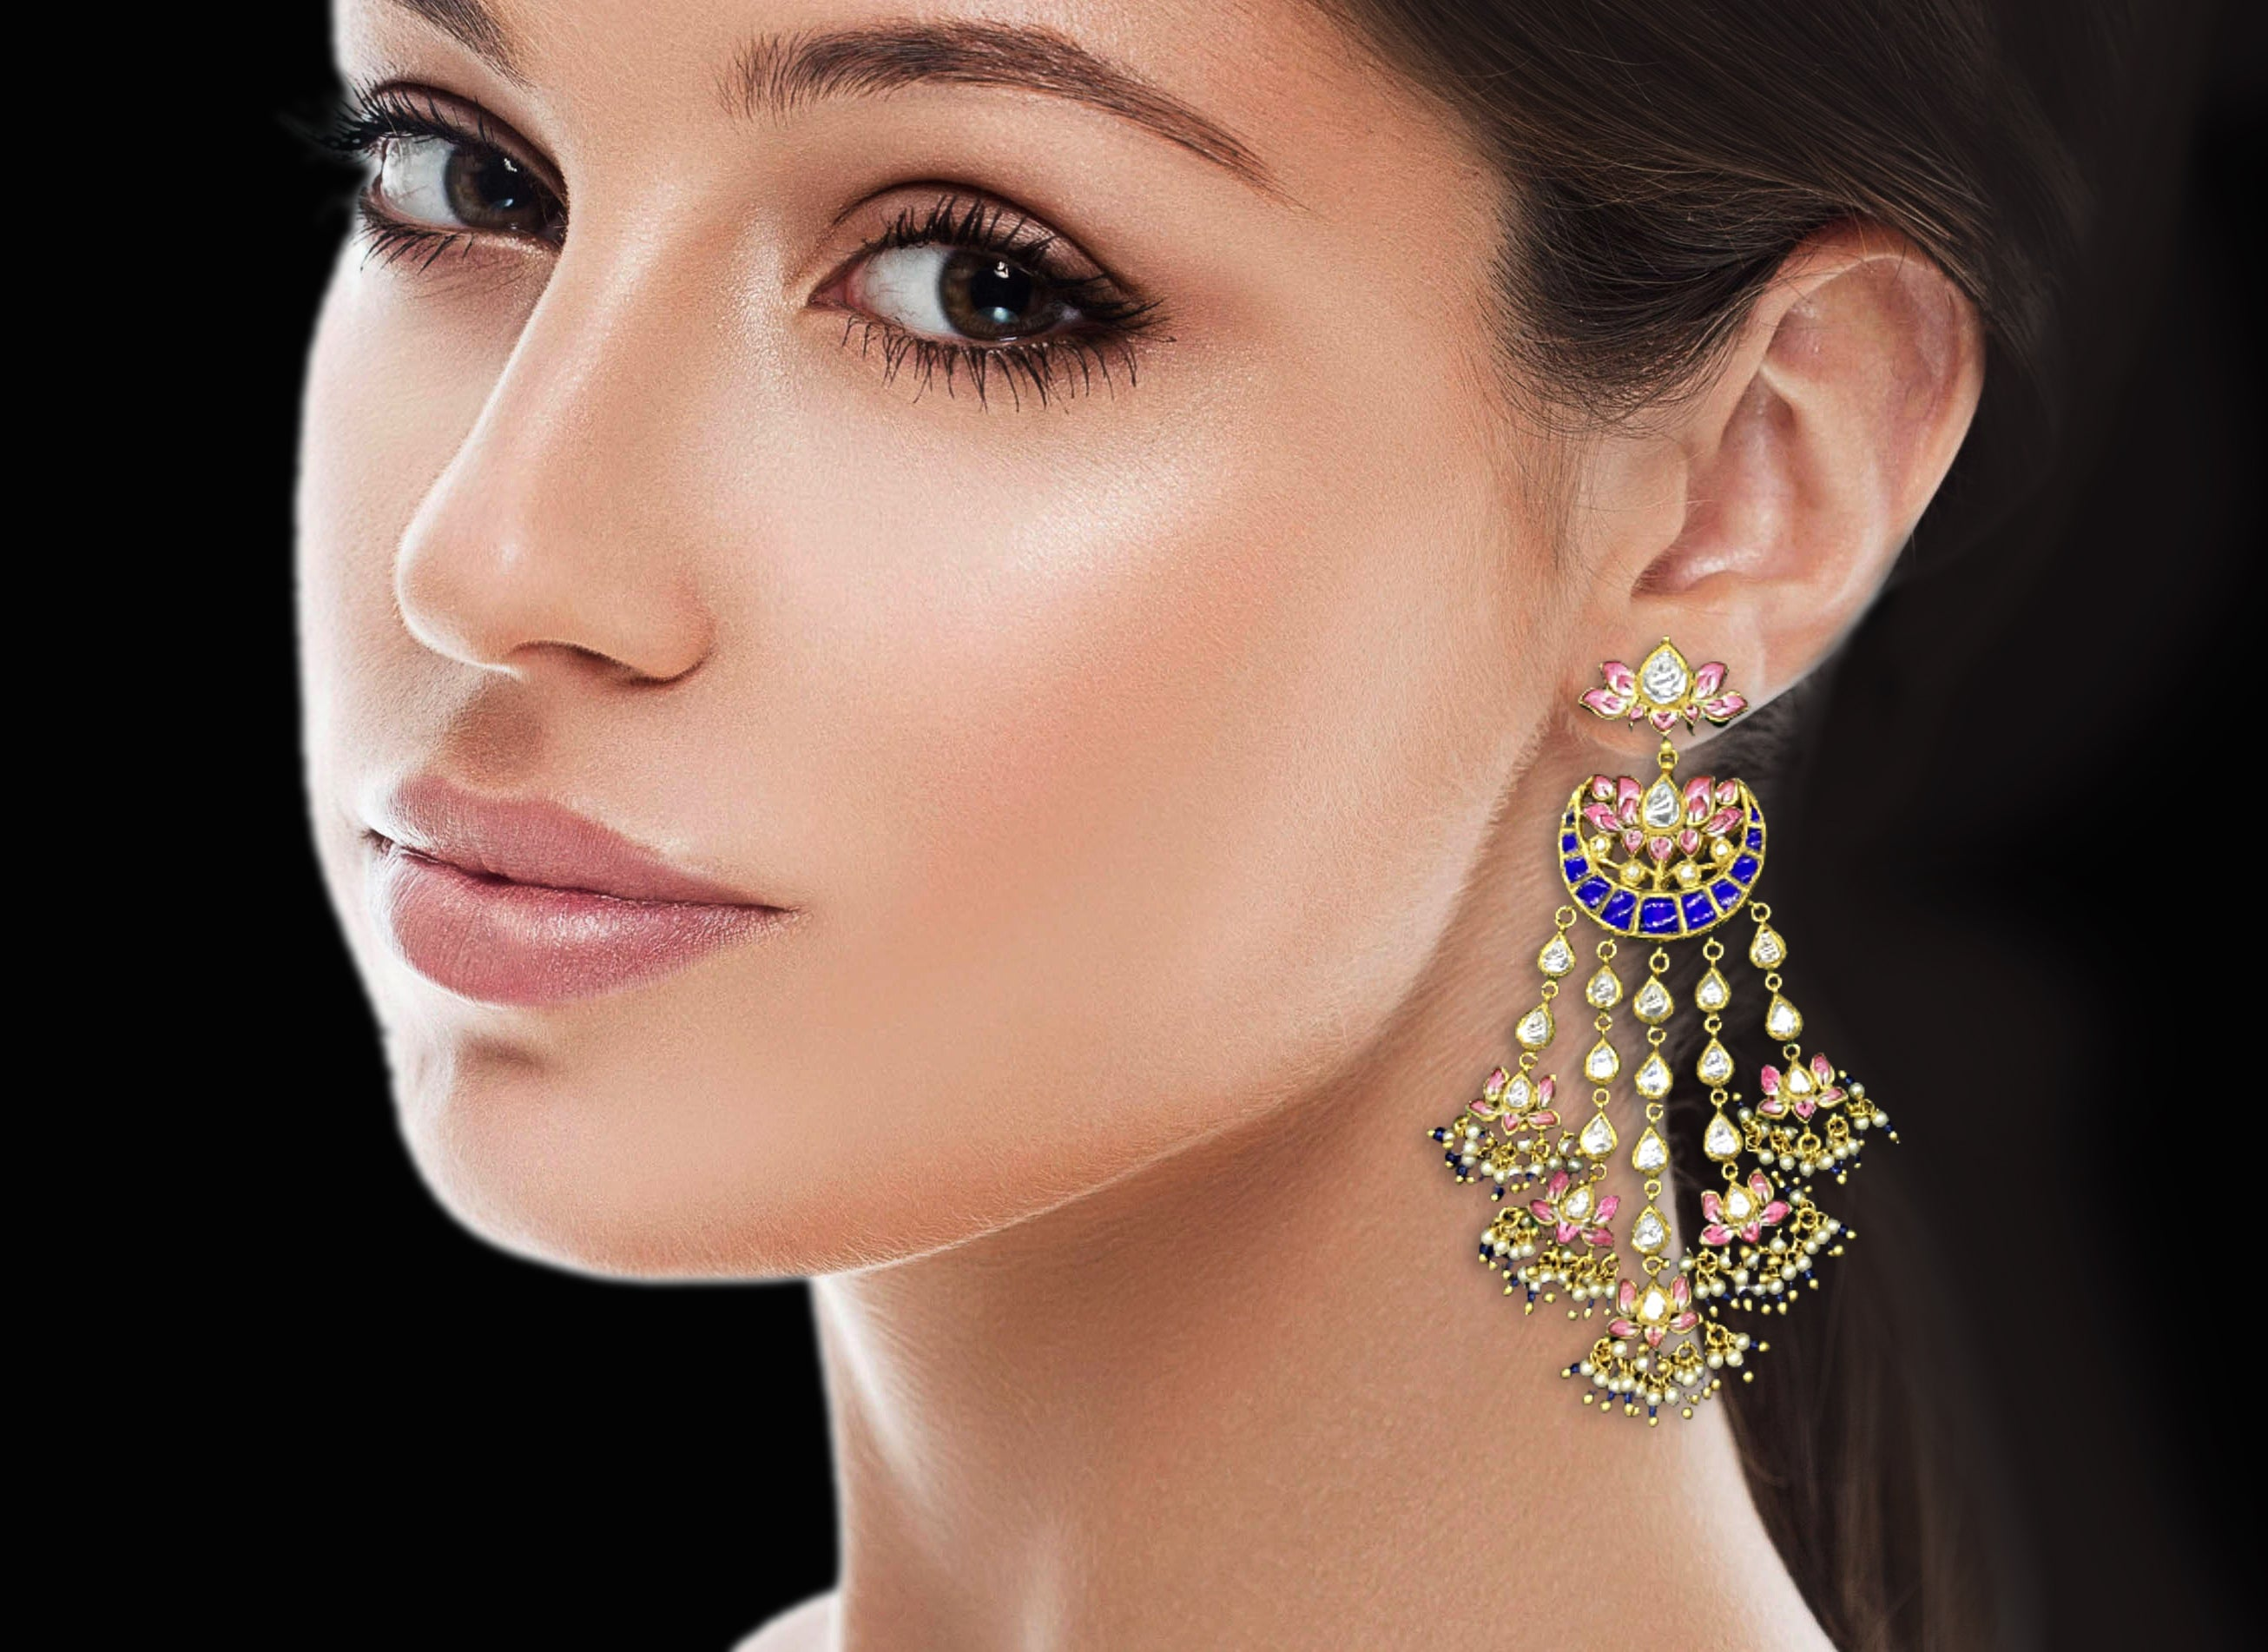 18k Gold and Diamond Polki Lotus Chandelier Earring Pair with cascading polkis - G. K. Ratnam